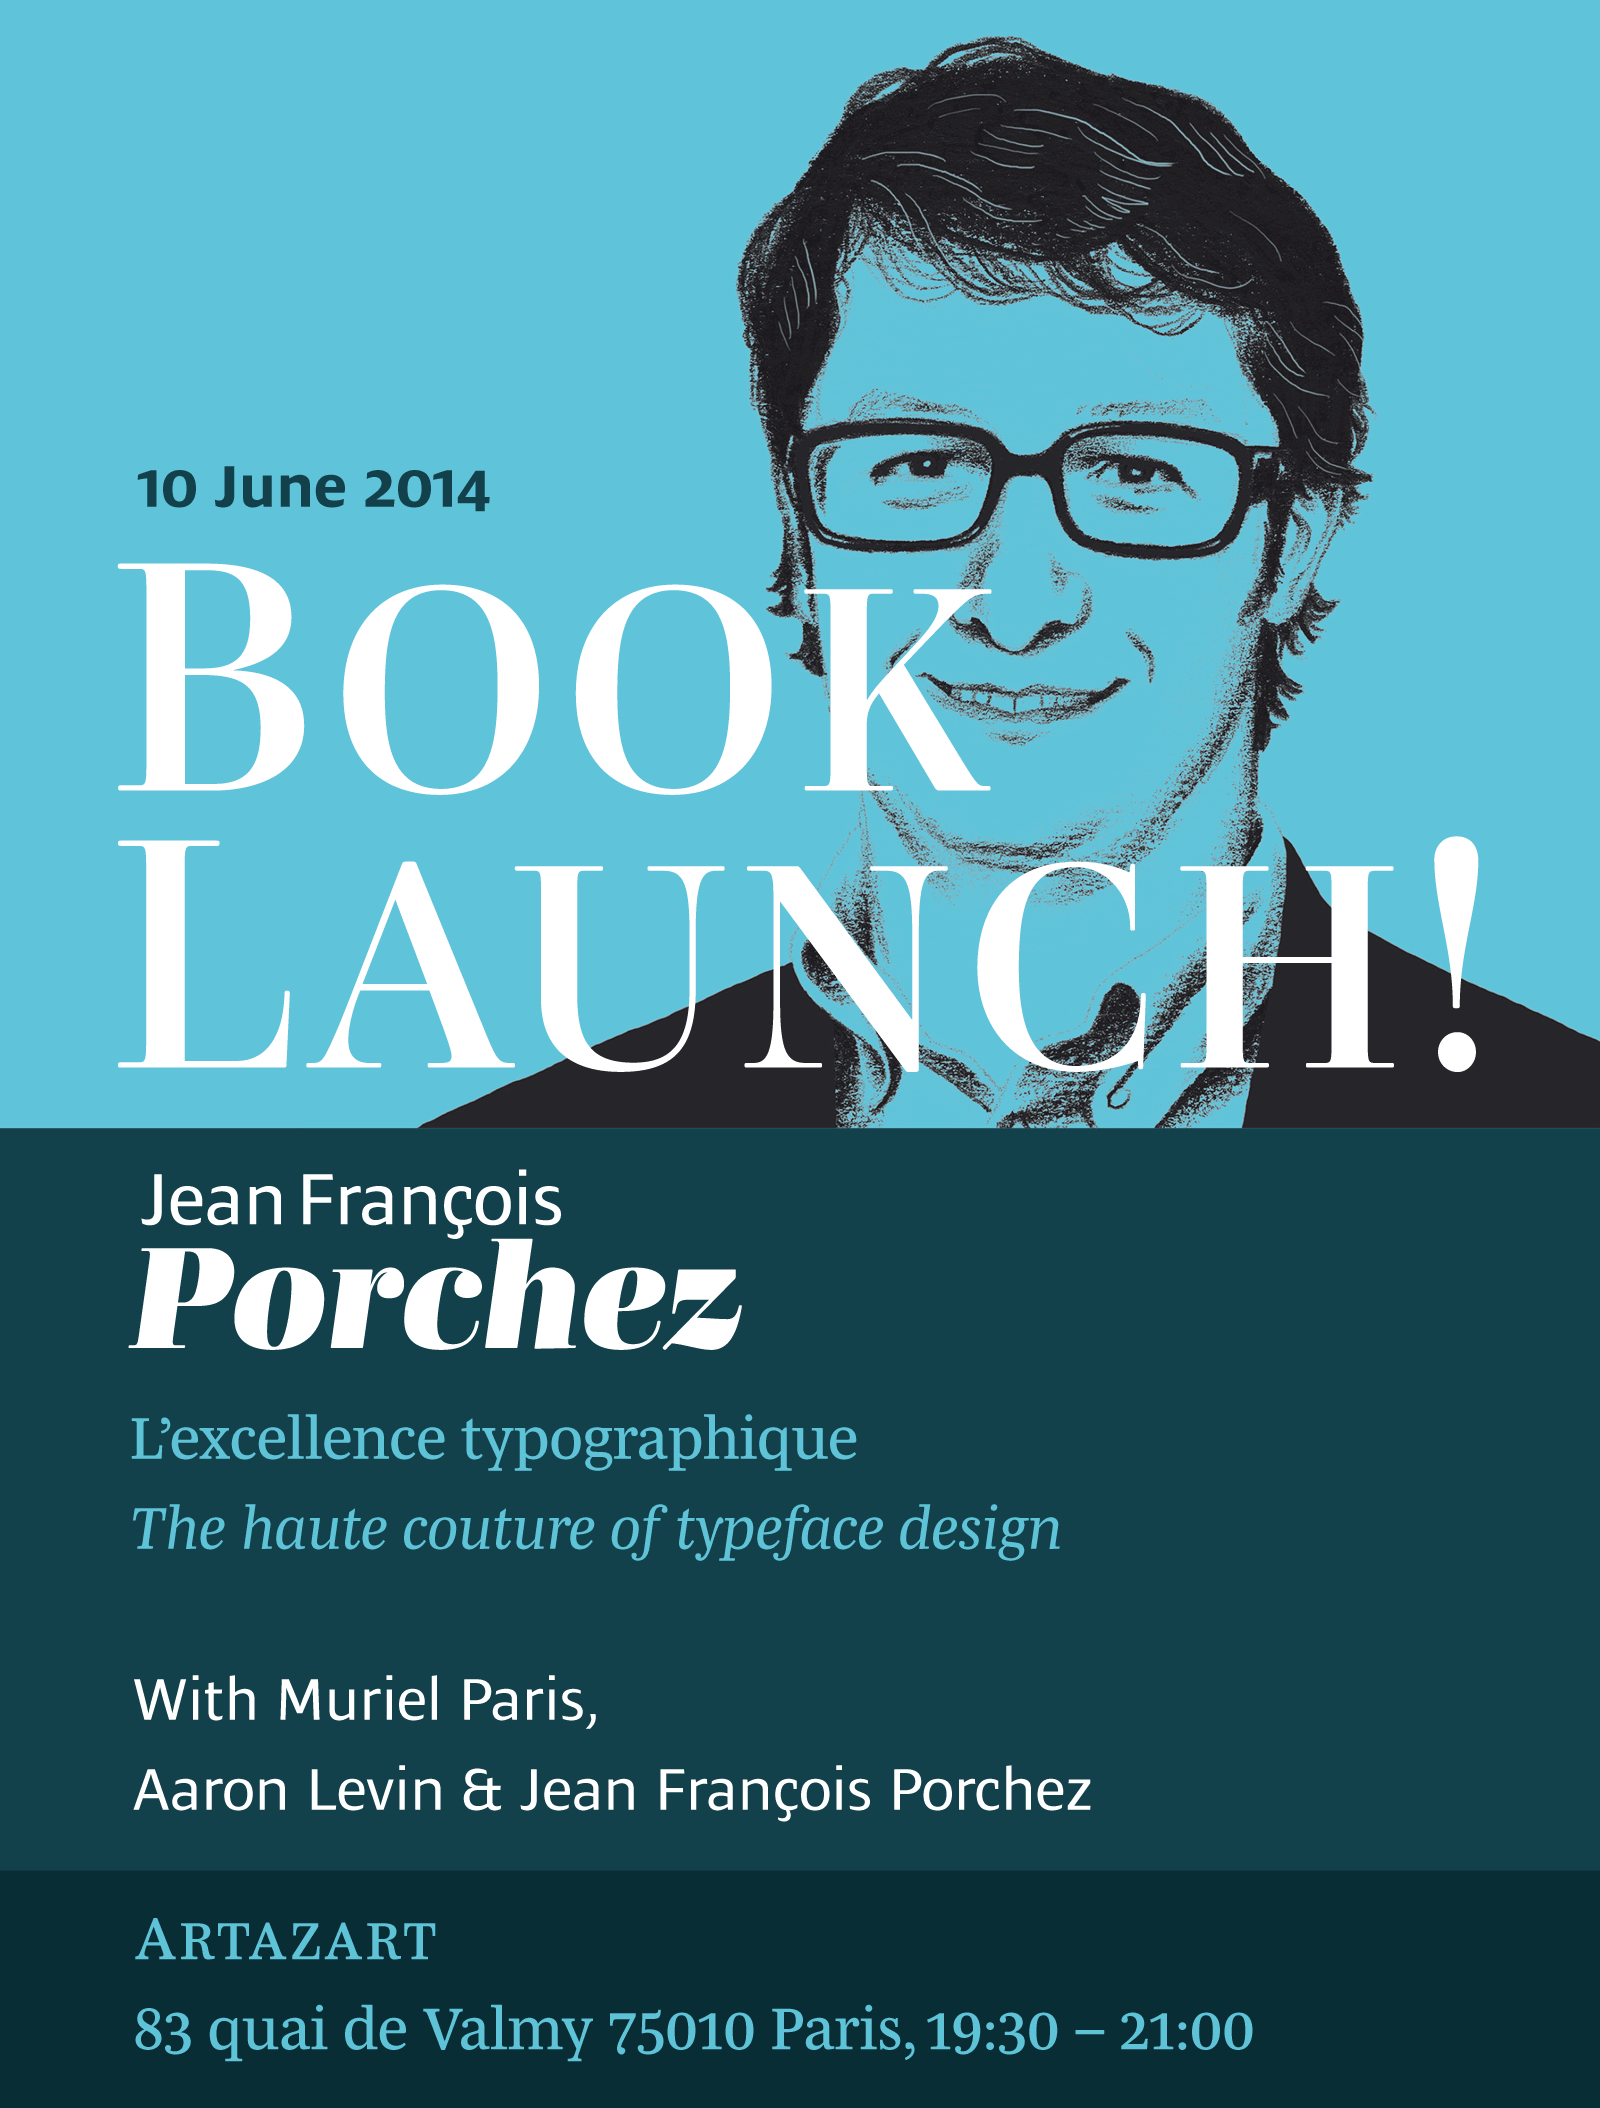 Book launch: Jean François Porchez's Monograph